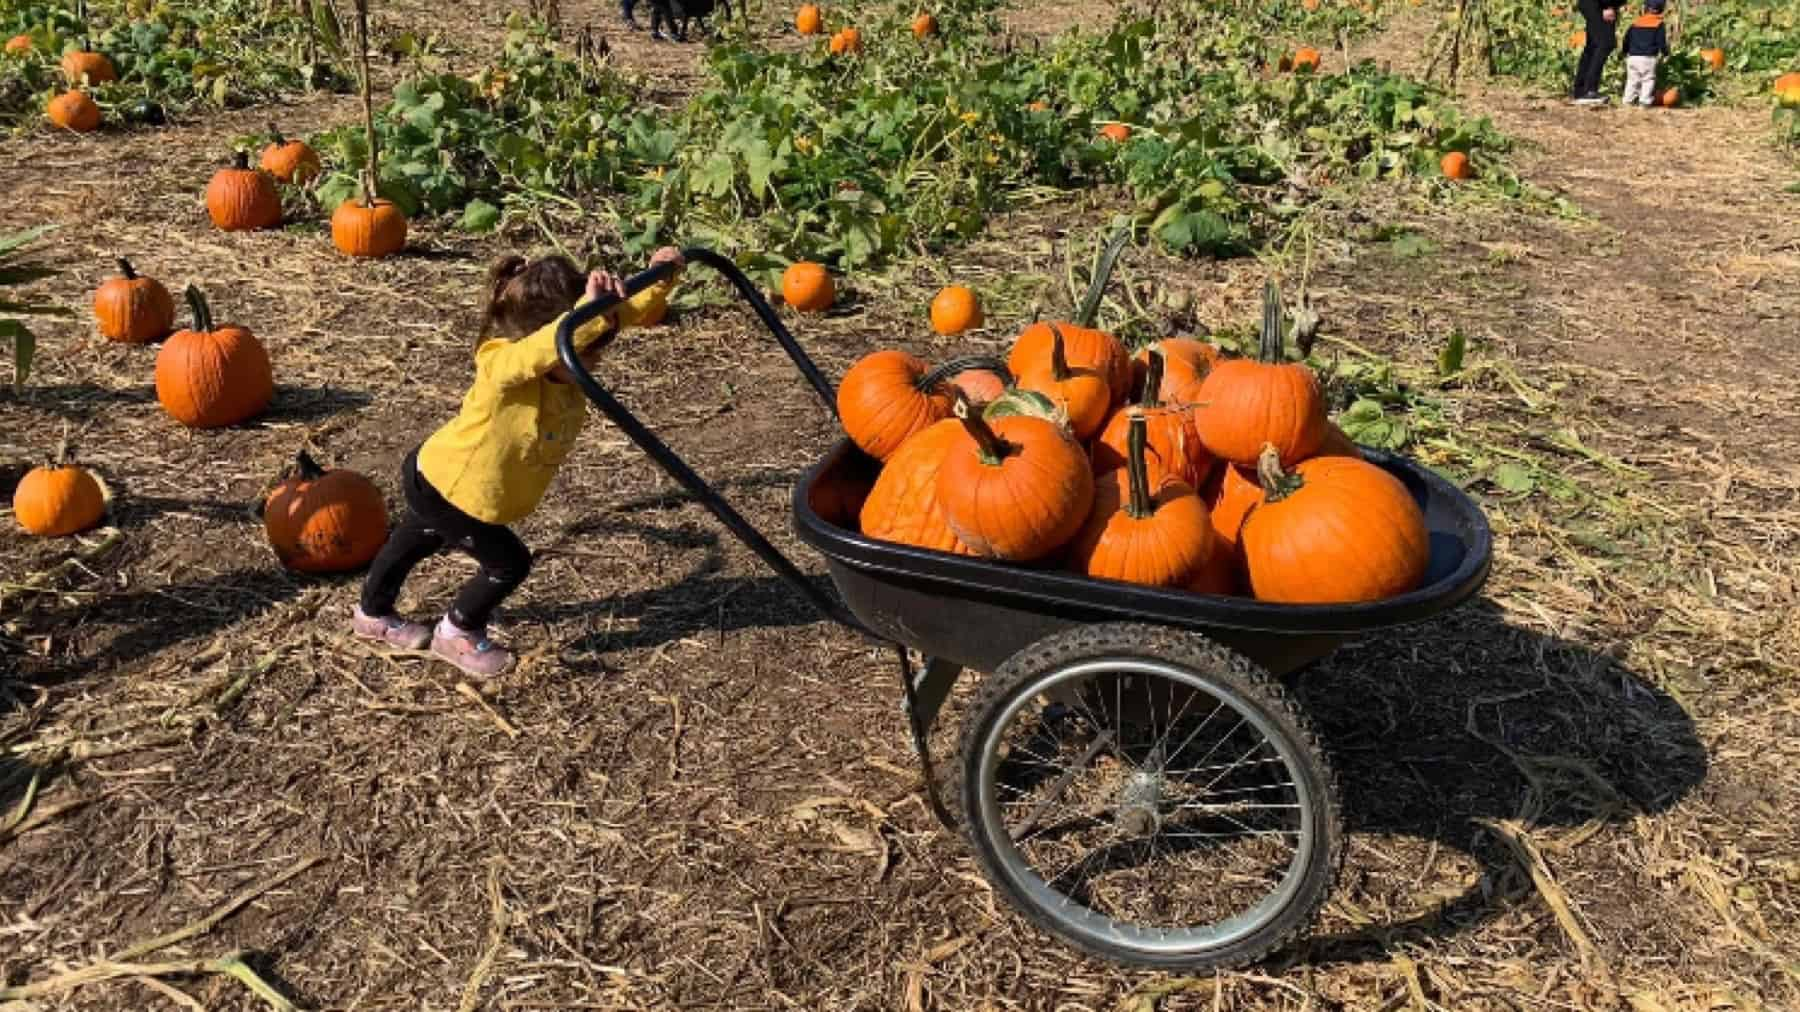 Pumpkin patch, child pushing wheelbarrow full of pumpkins